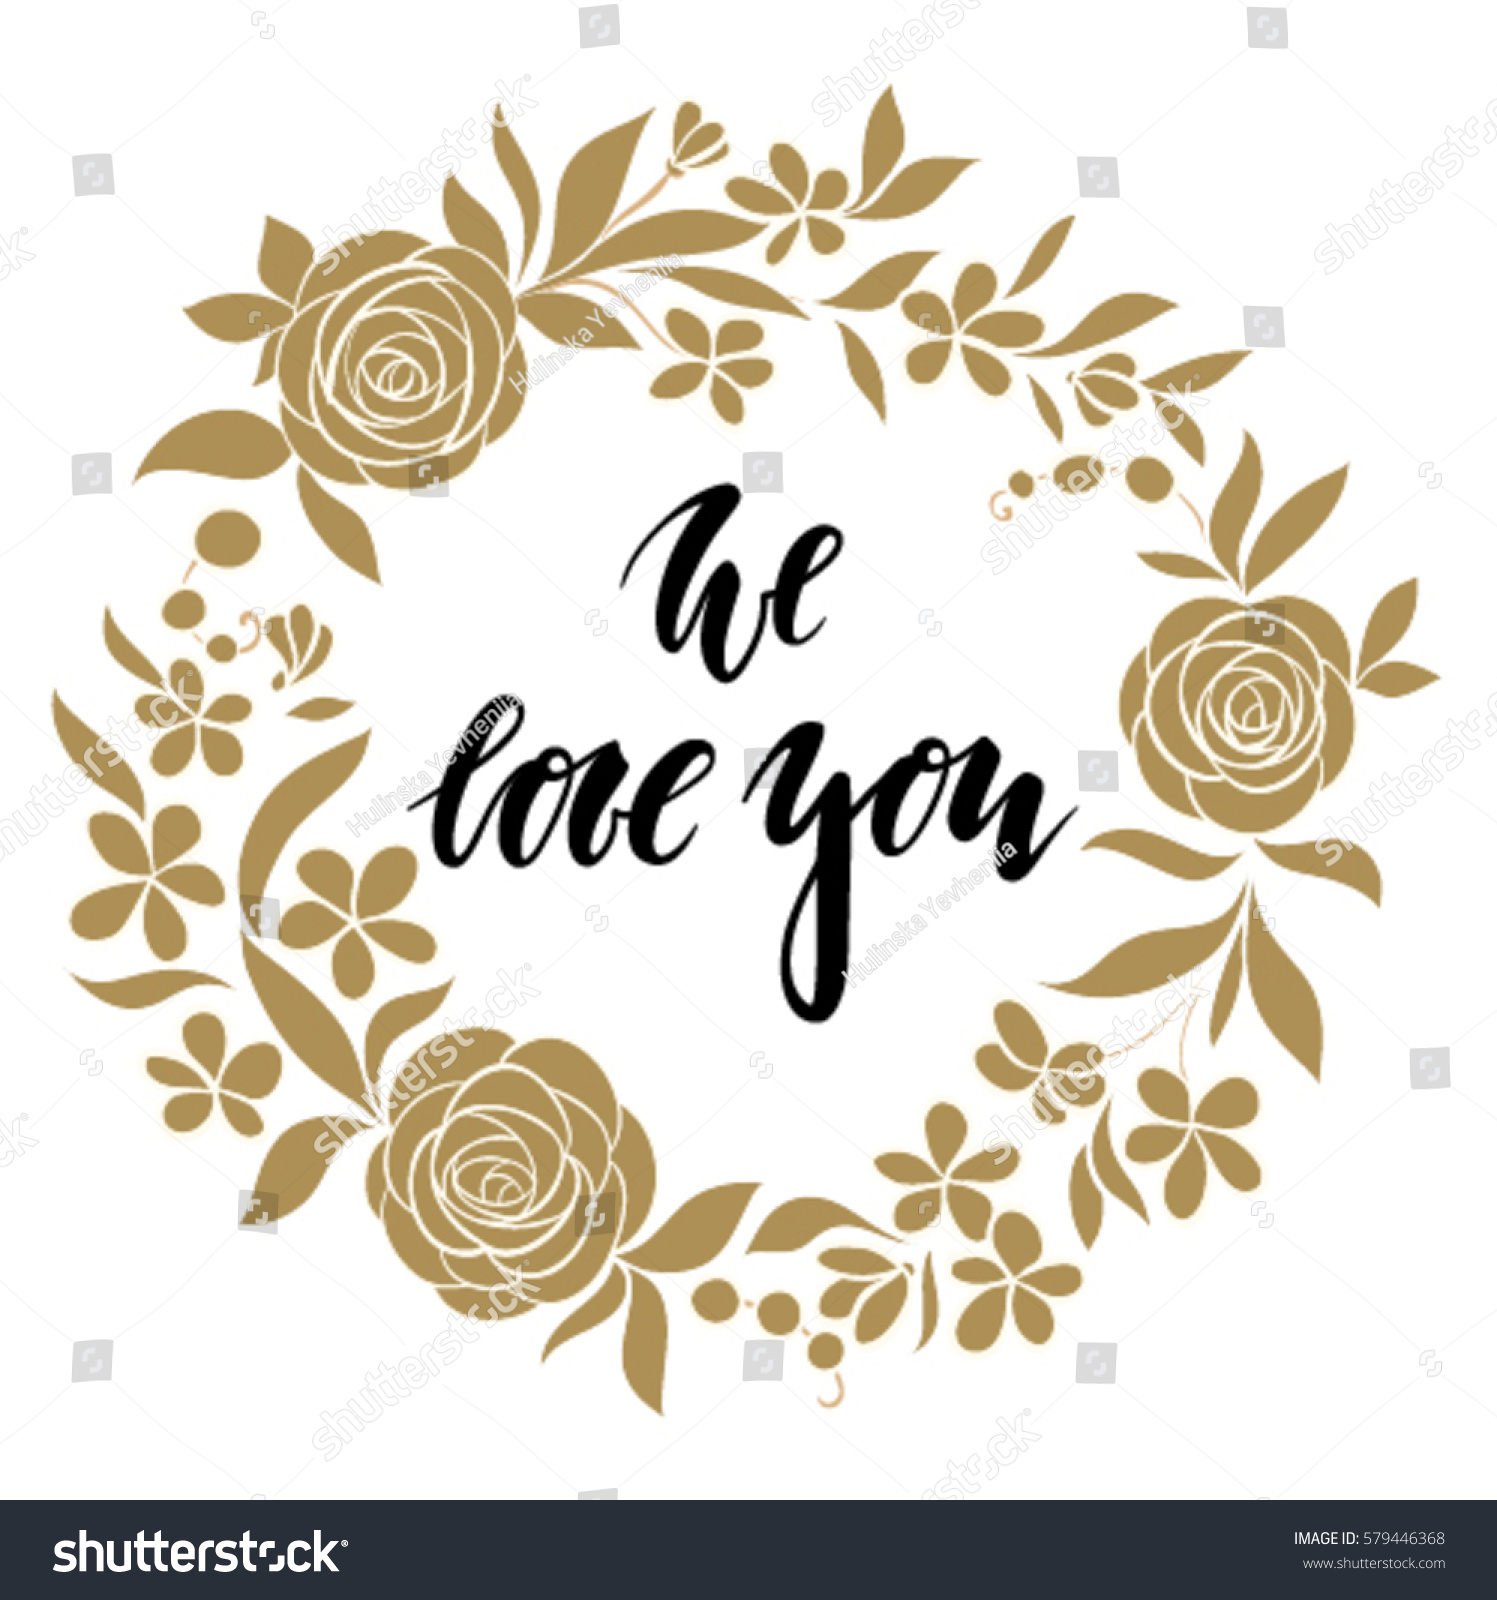 We Love You Hand Drawn Calligraphy Stock Vector (Royalty Free ...